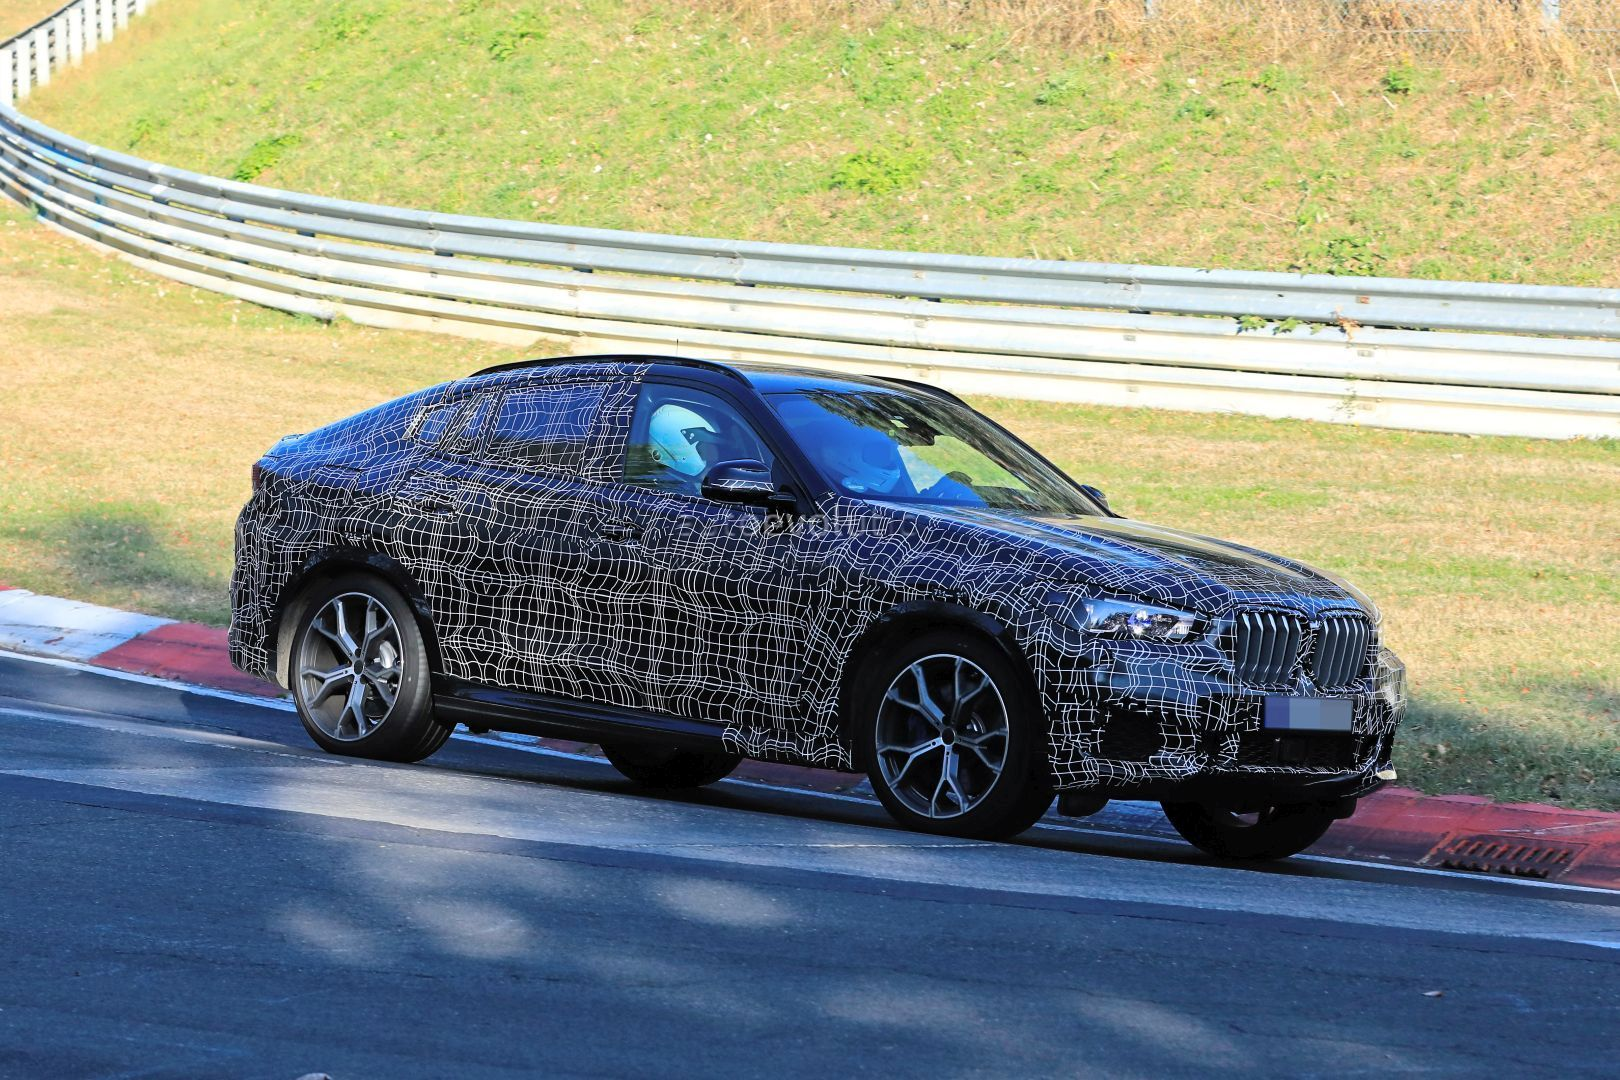 2020 Bmw X6 Laps Nurburgring Prototype Reveals Sharper Look